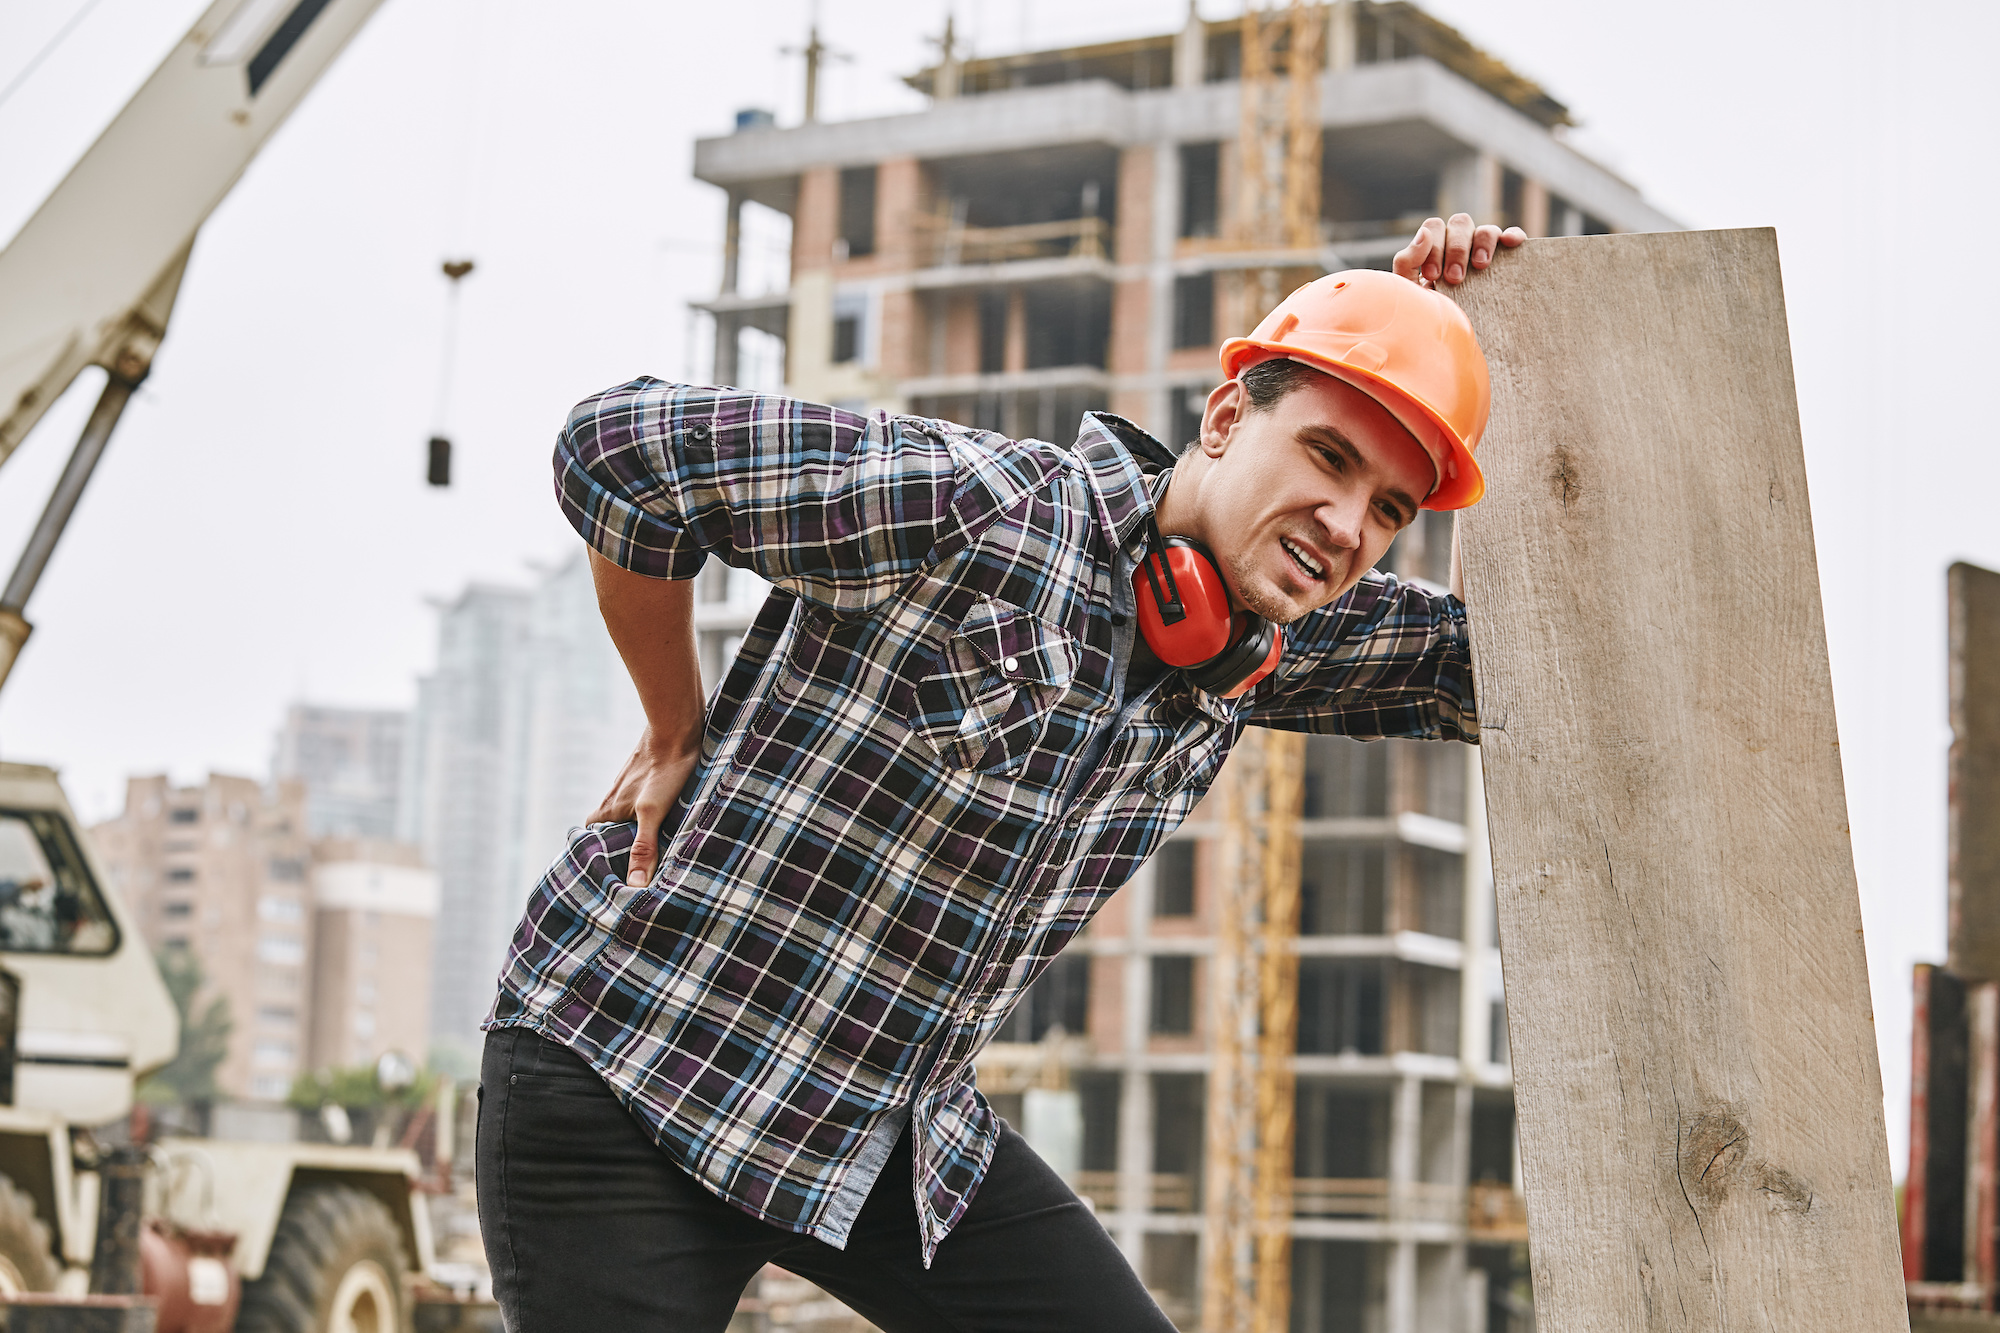 construction worker with back pain needs workers' compensation injury care